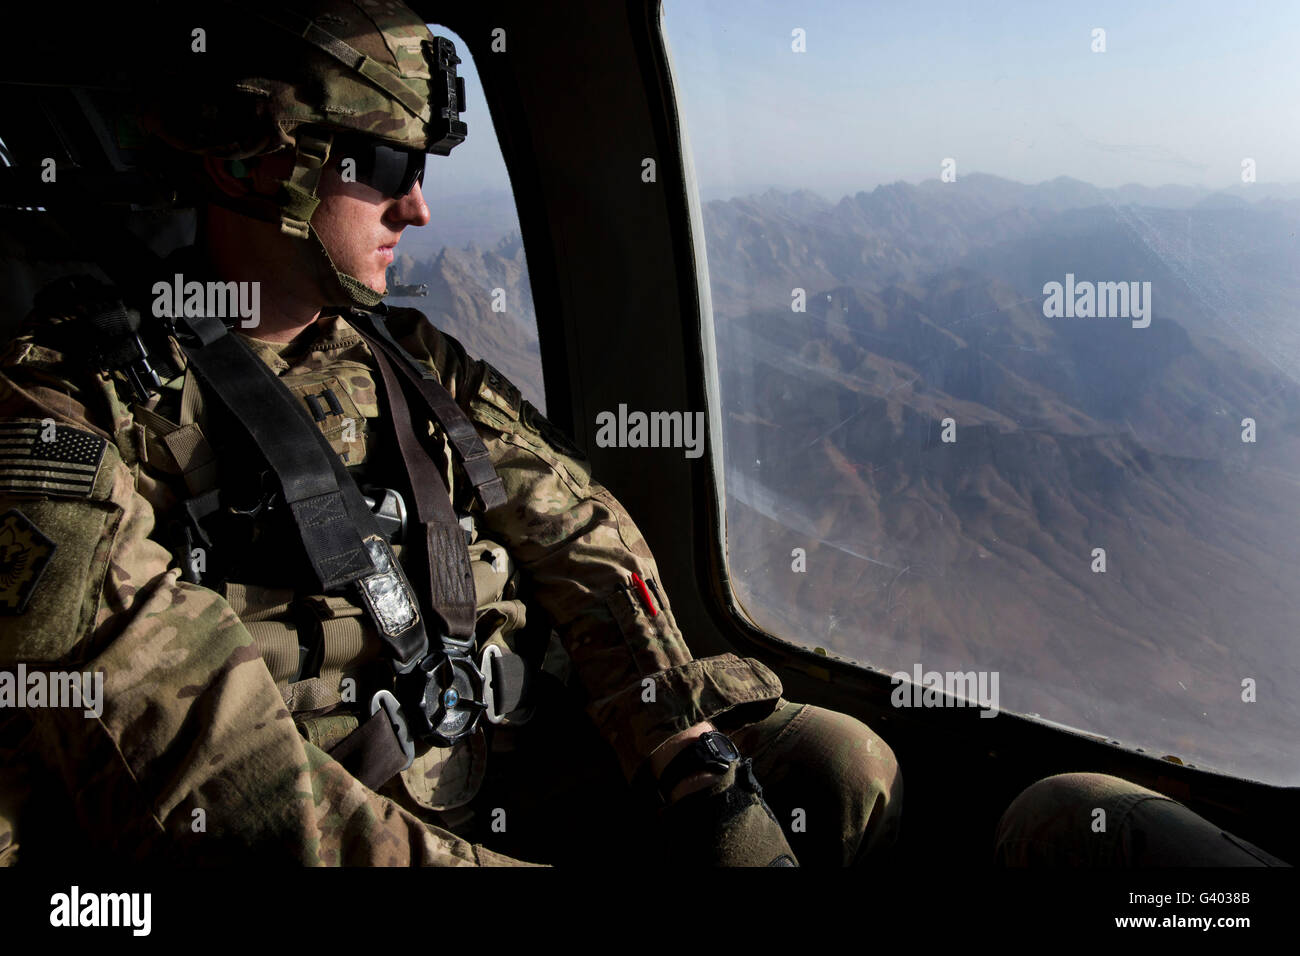 U.S. Army soldier looks out the window of a UH-60 Black Hawk helicopter. - Stock Image